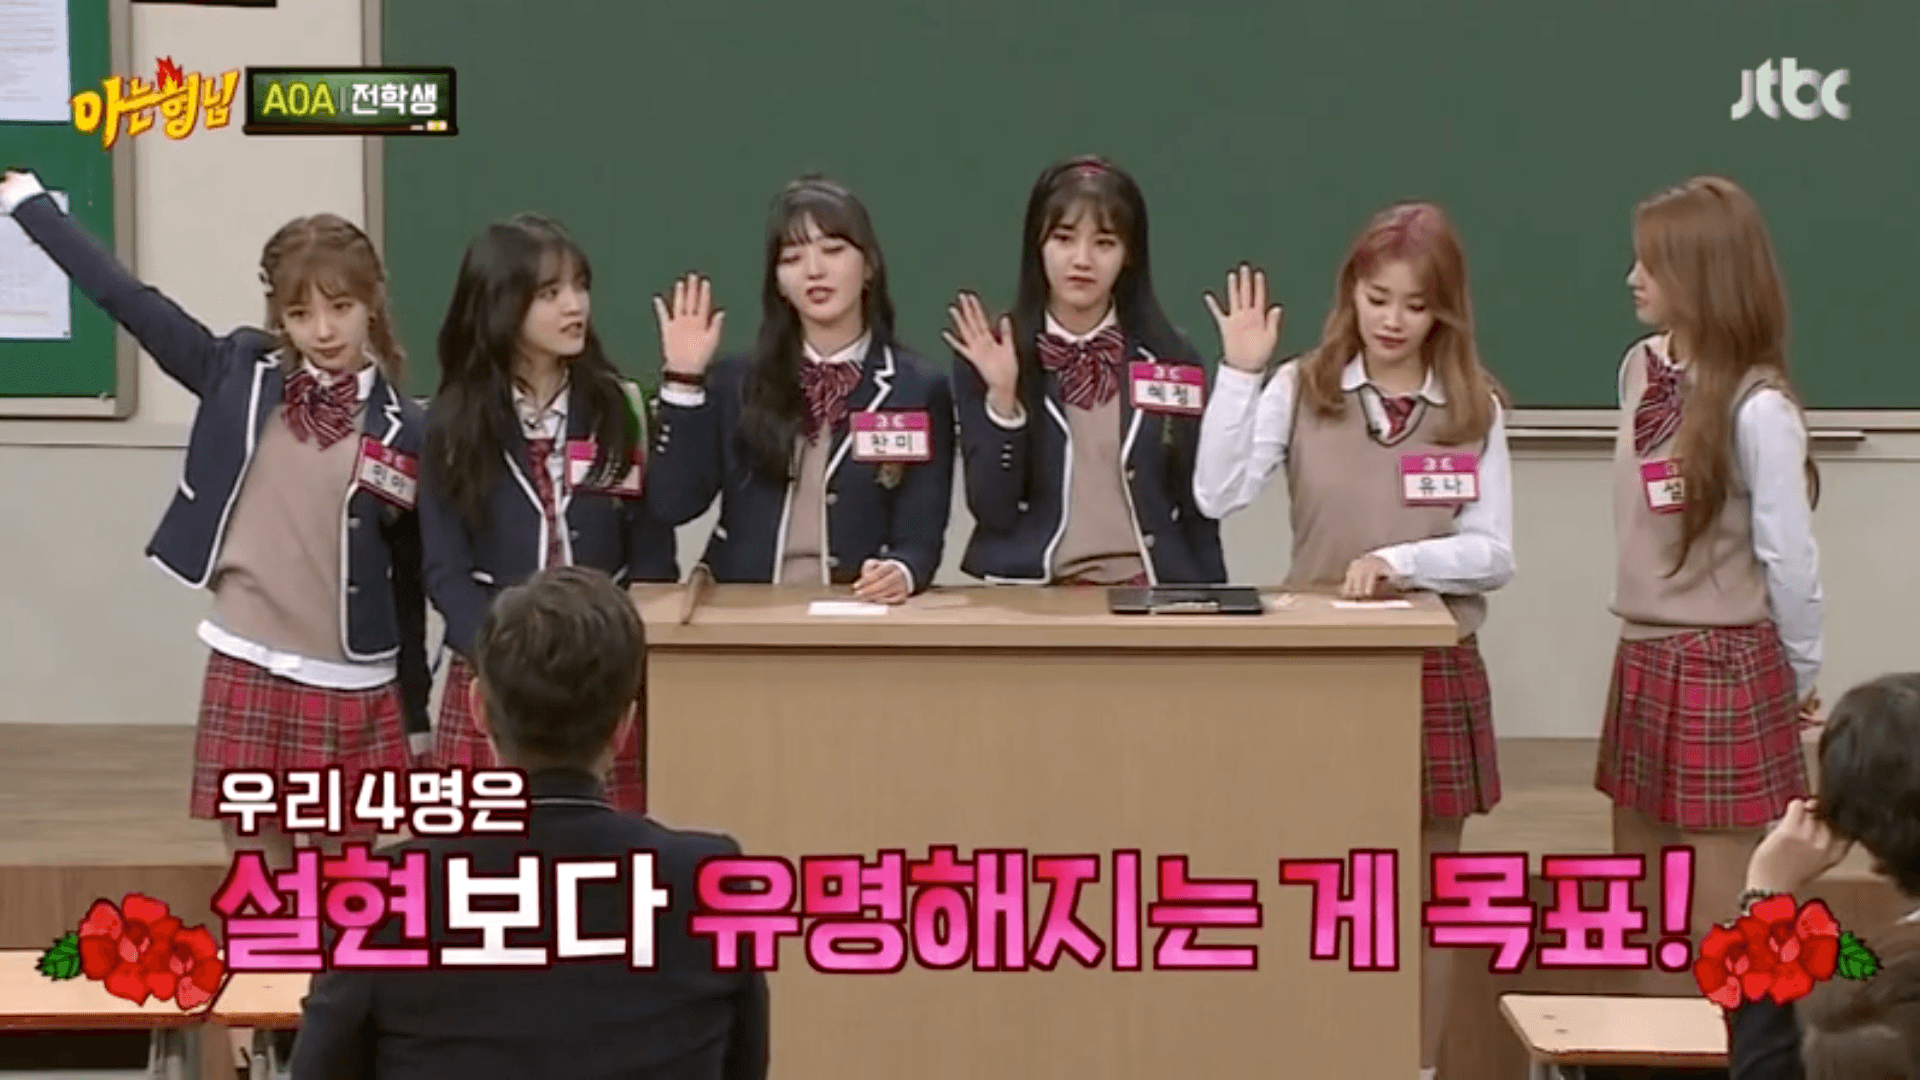 One host asked the girls to raise four hands, so Hyejeong, Mina, Yuna, and Chanmi did.